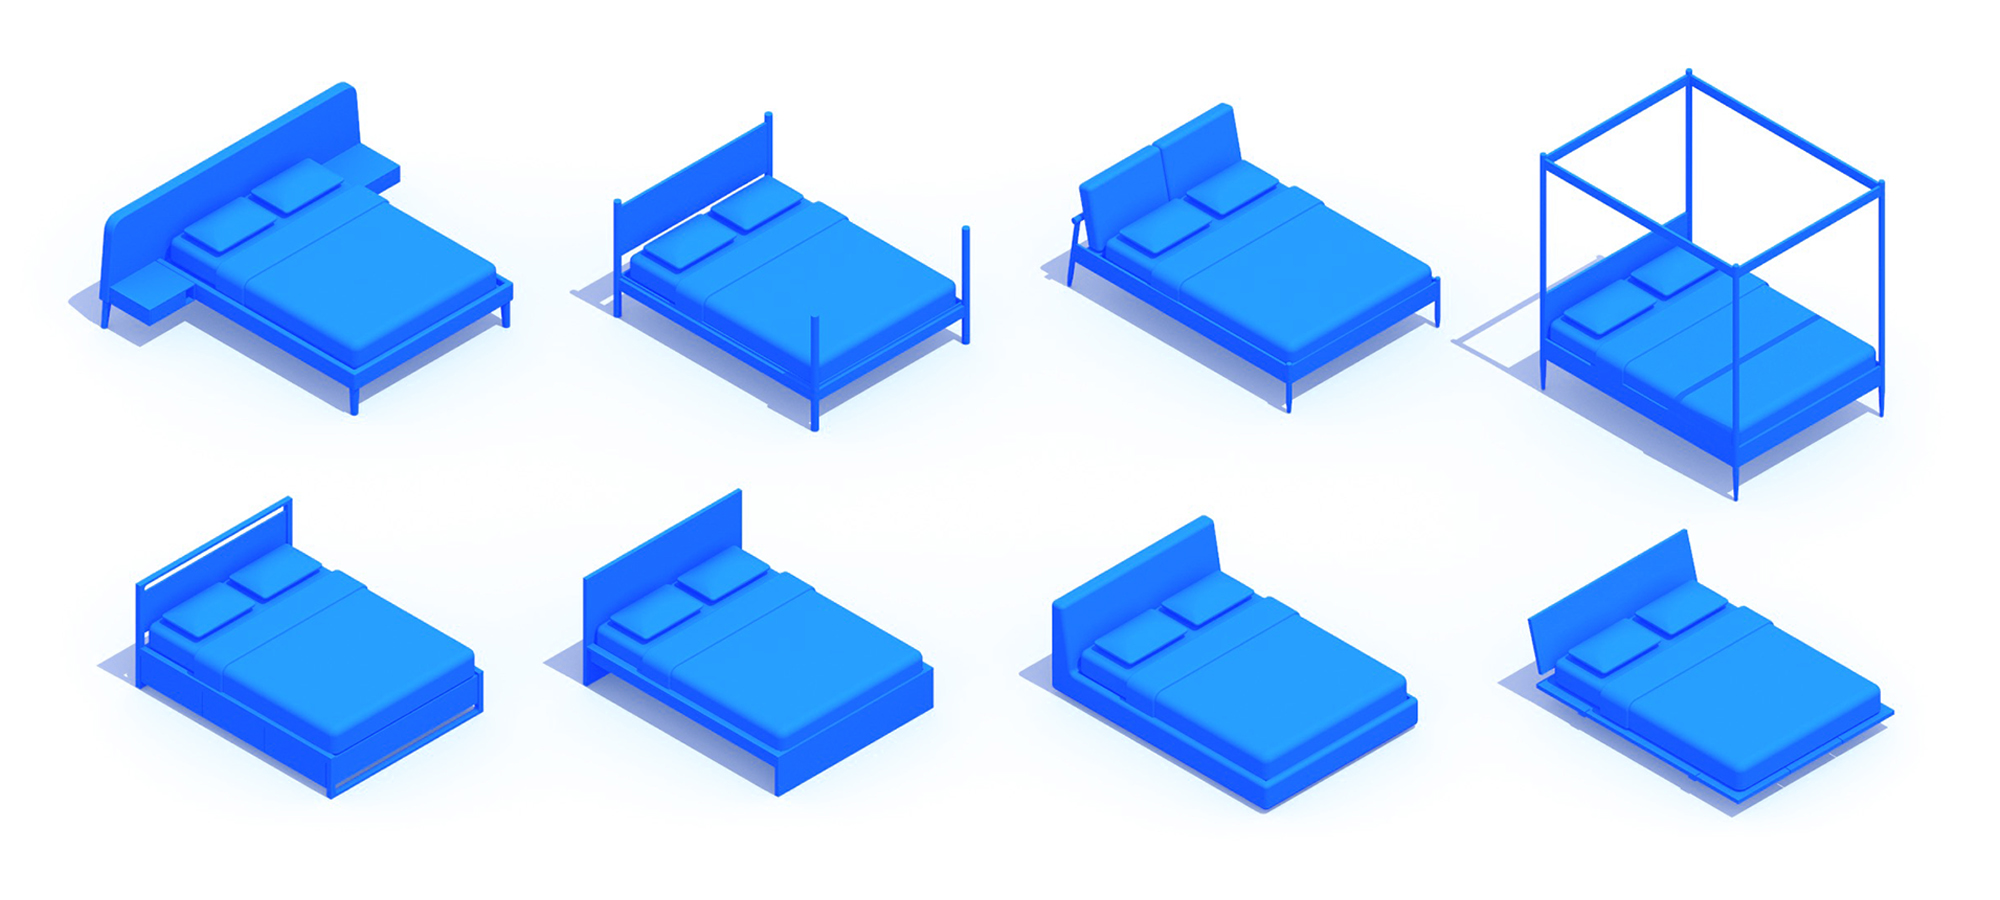 Collection of 3D Bed Frames showing a diversity of sizes, styles, and types